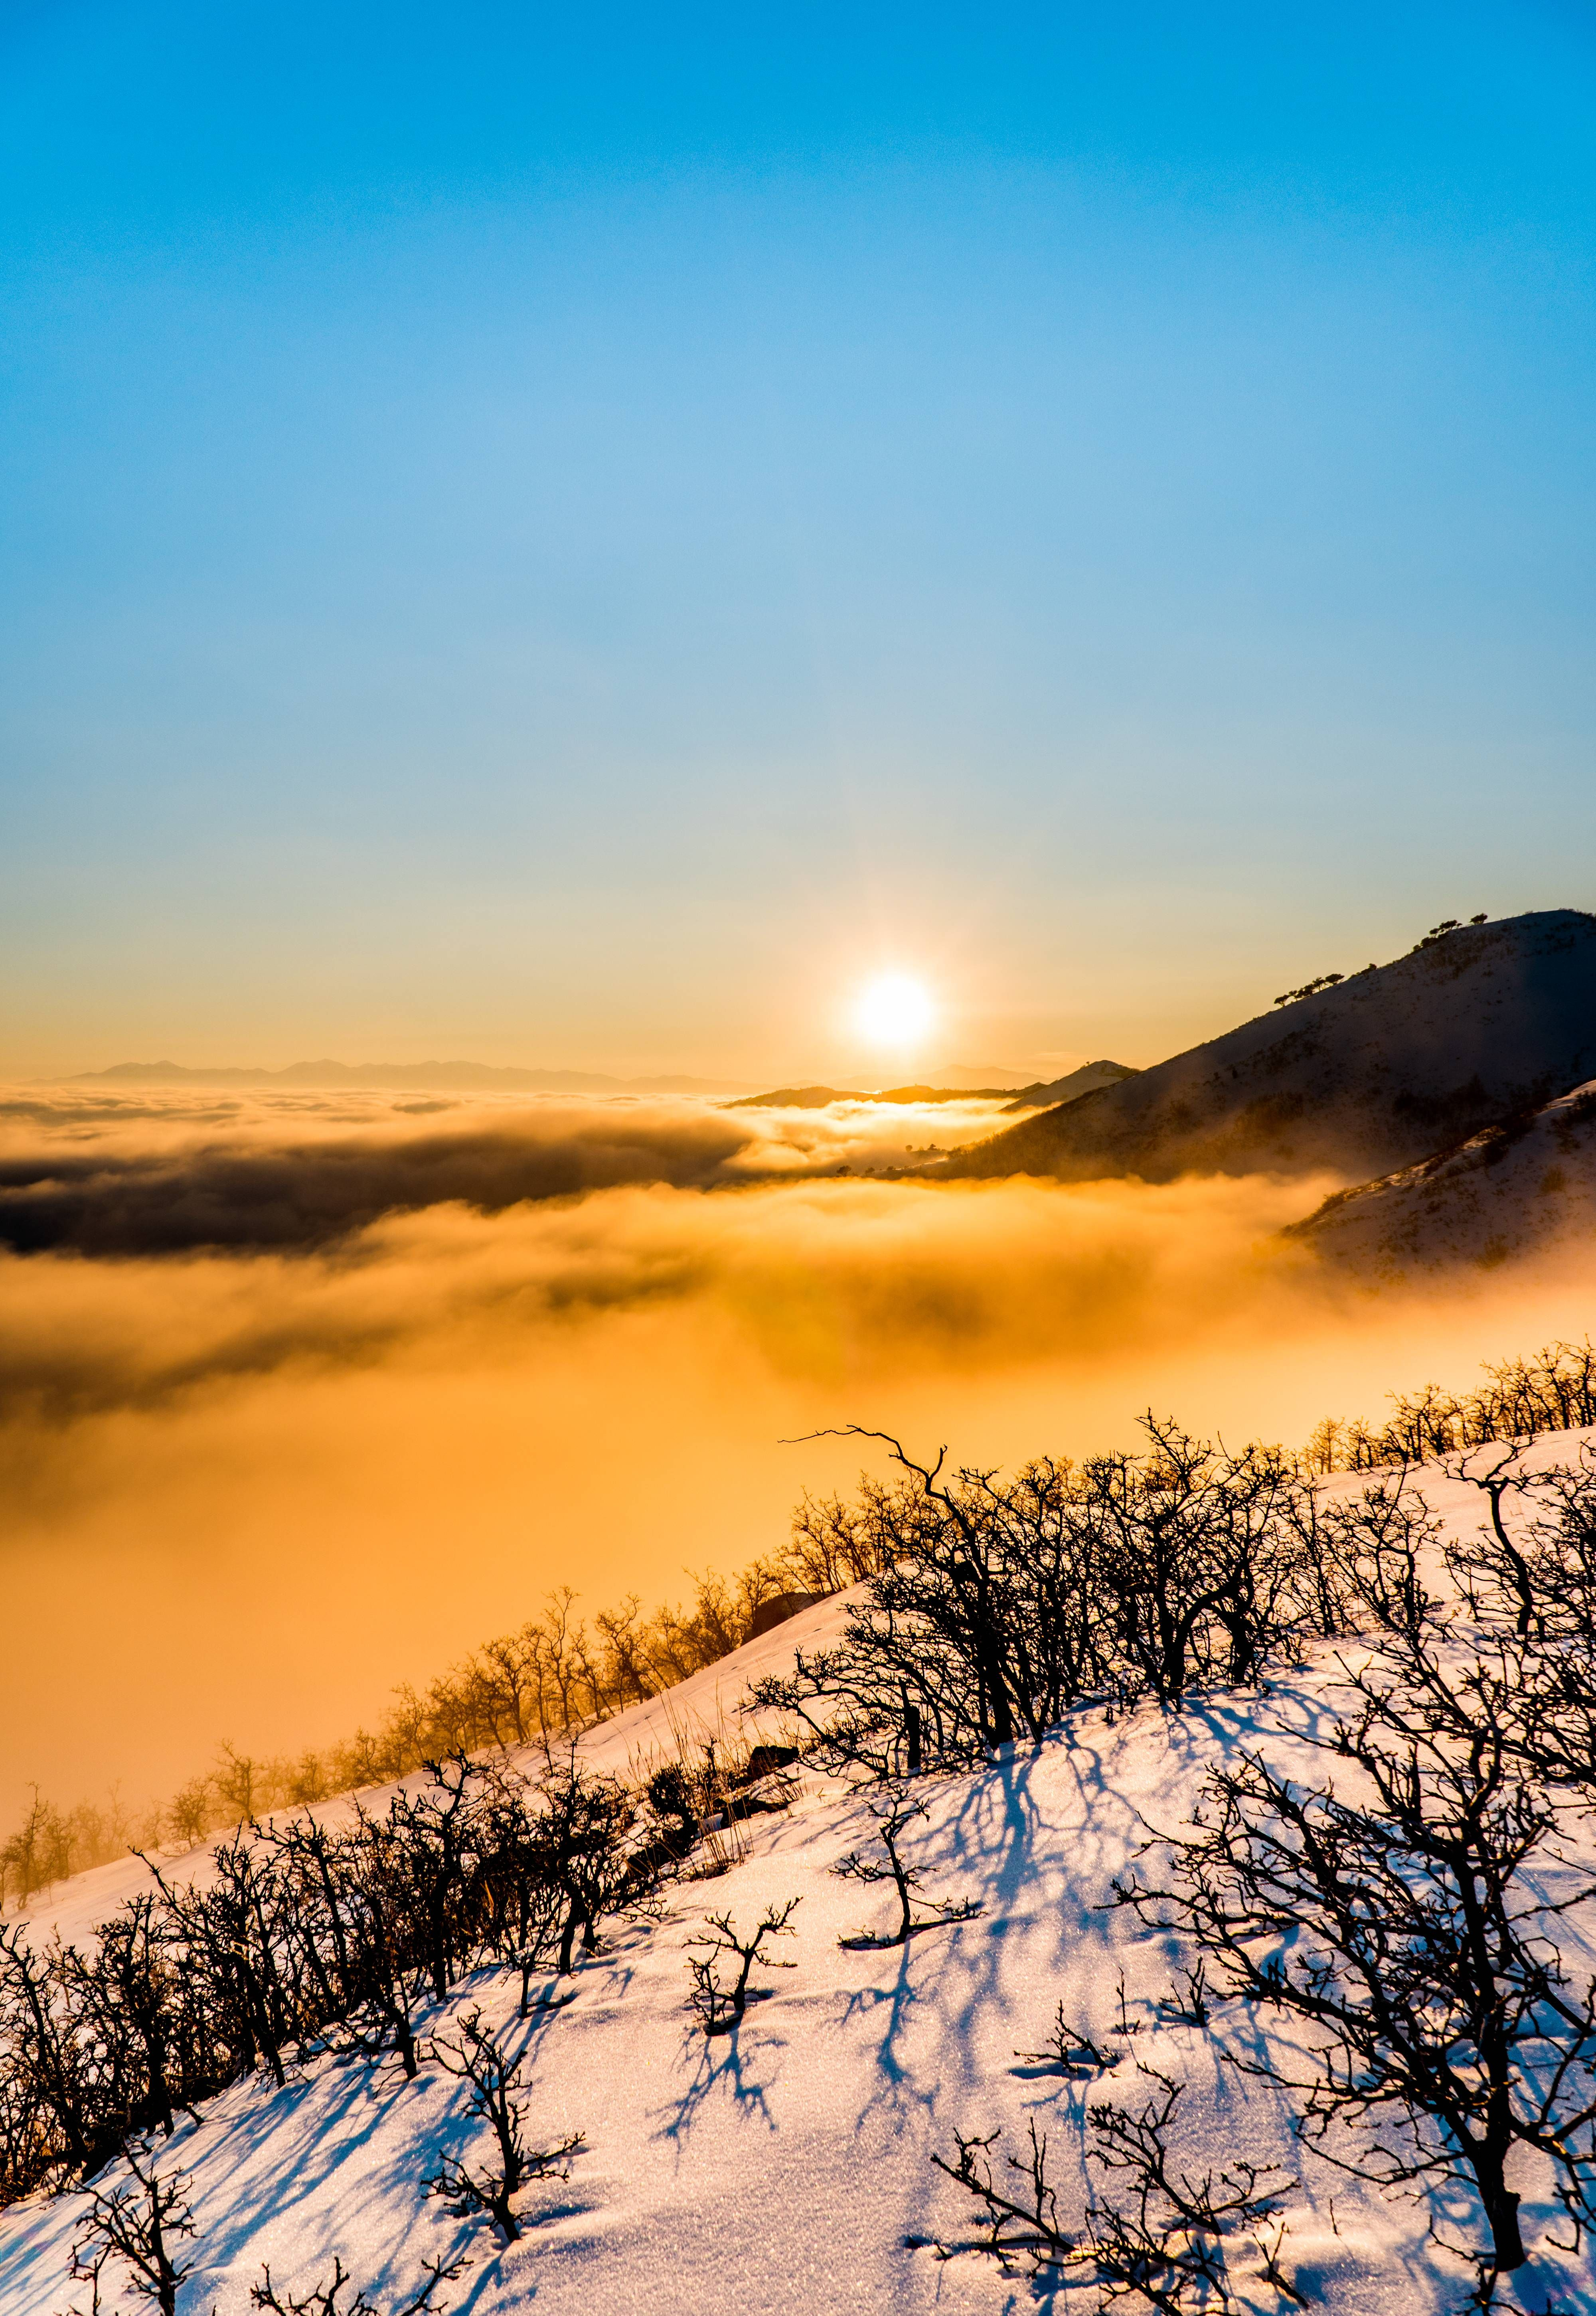 Lake tahoe sunset travel channel pinterest - Yesterday I Hiked Through Waist Deep Snow To Get A Sunset View Over The Fog Salt Lake City Utah Usa Via Classy Bro